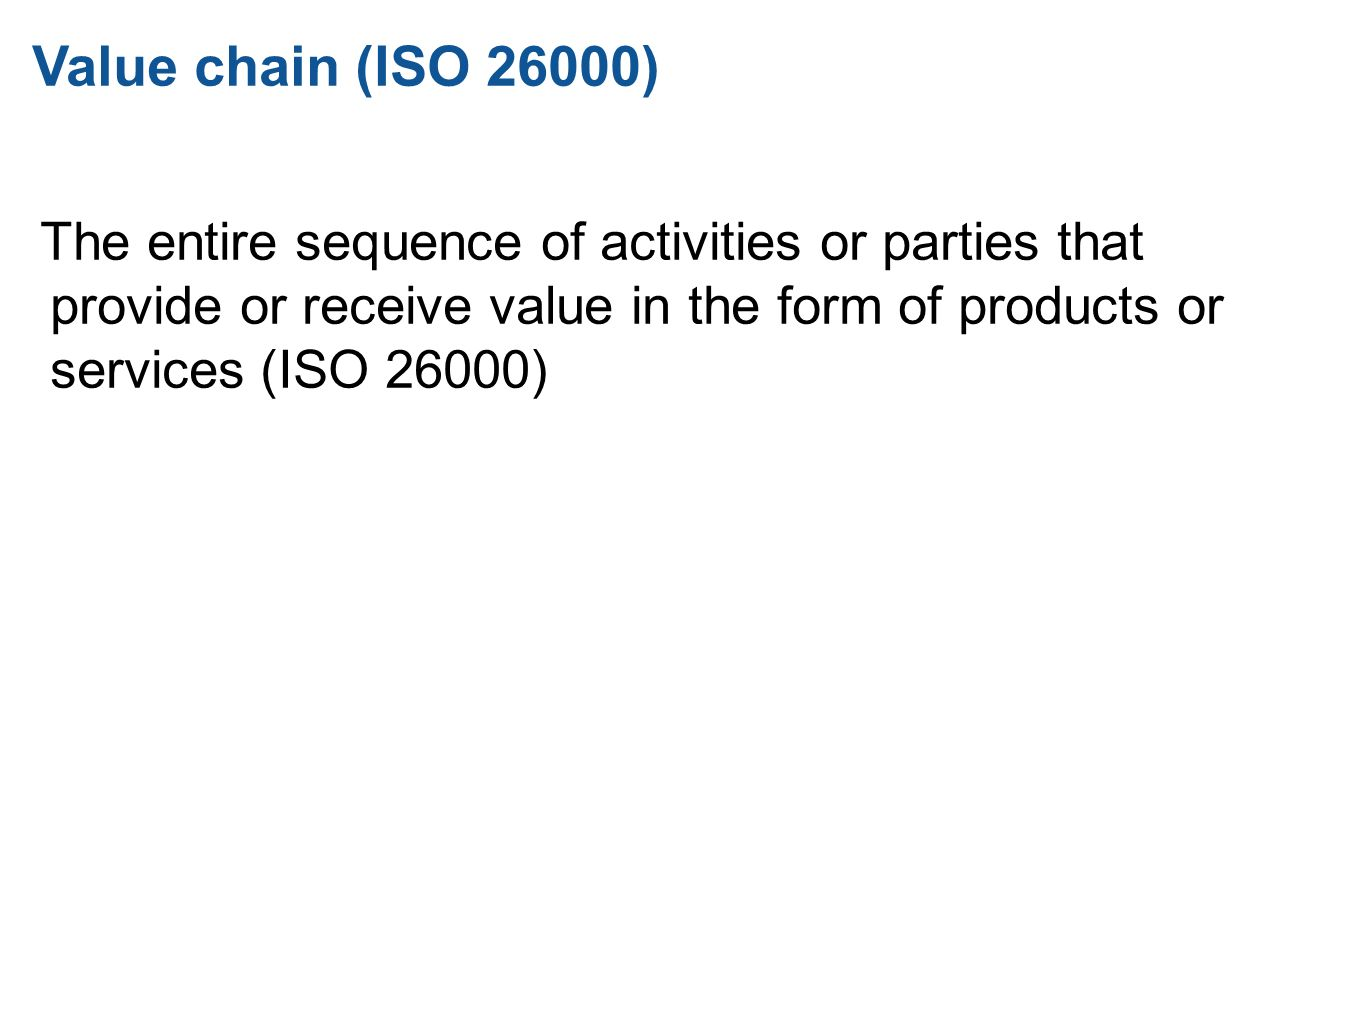 Value chain (ISO 26000) 20.